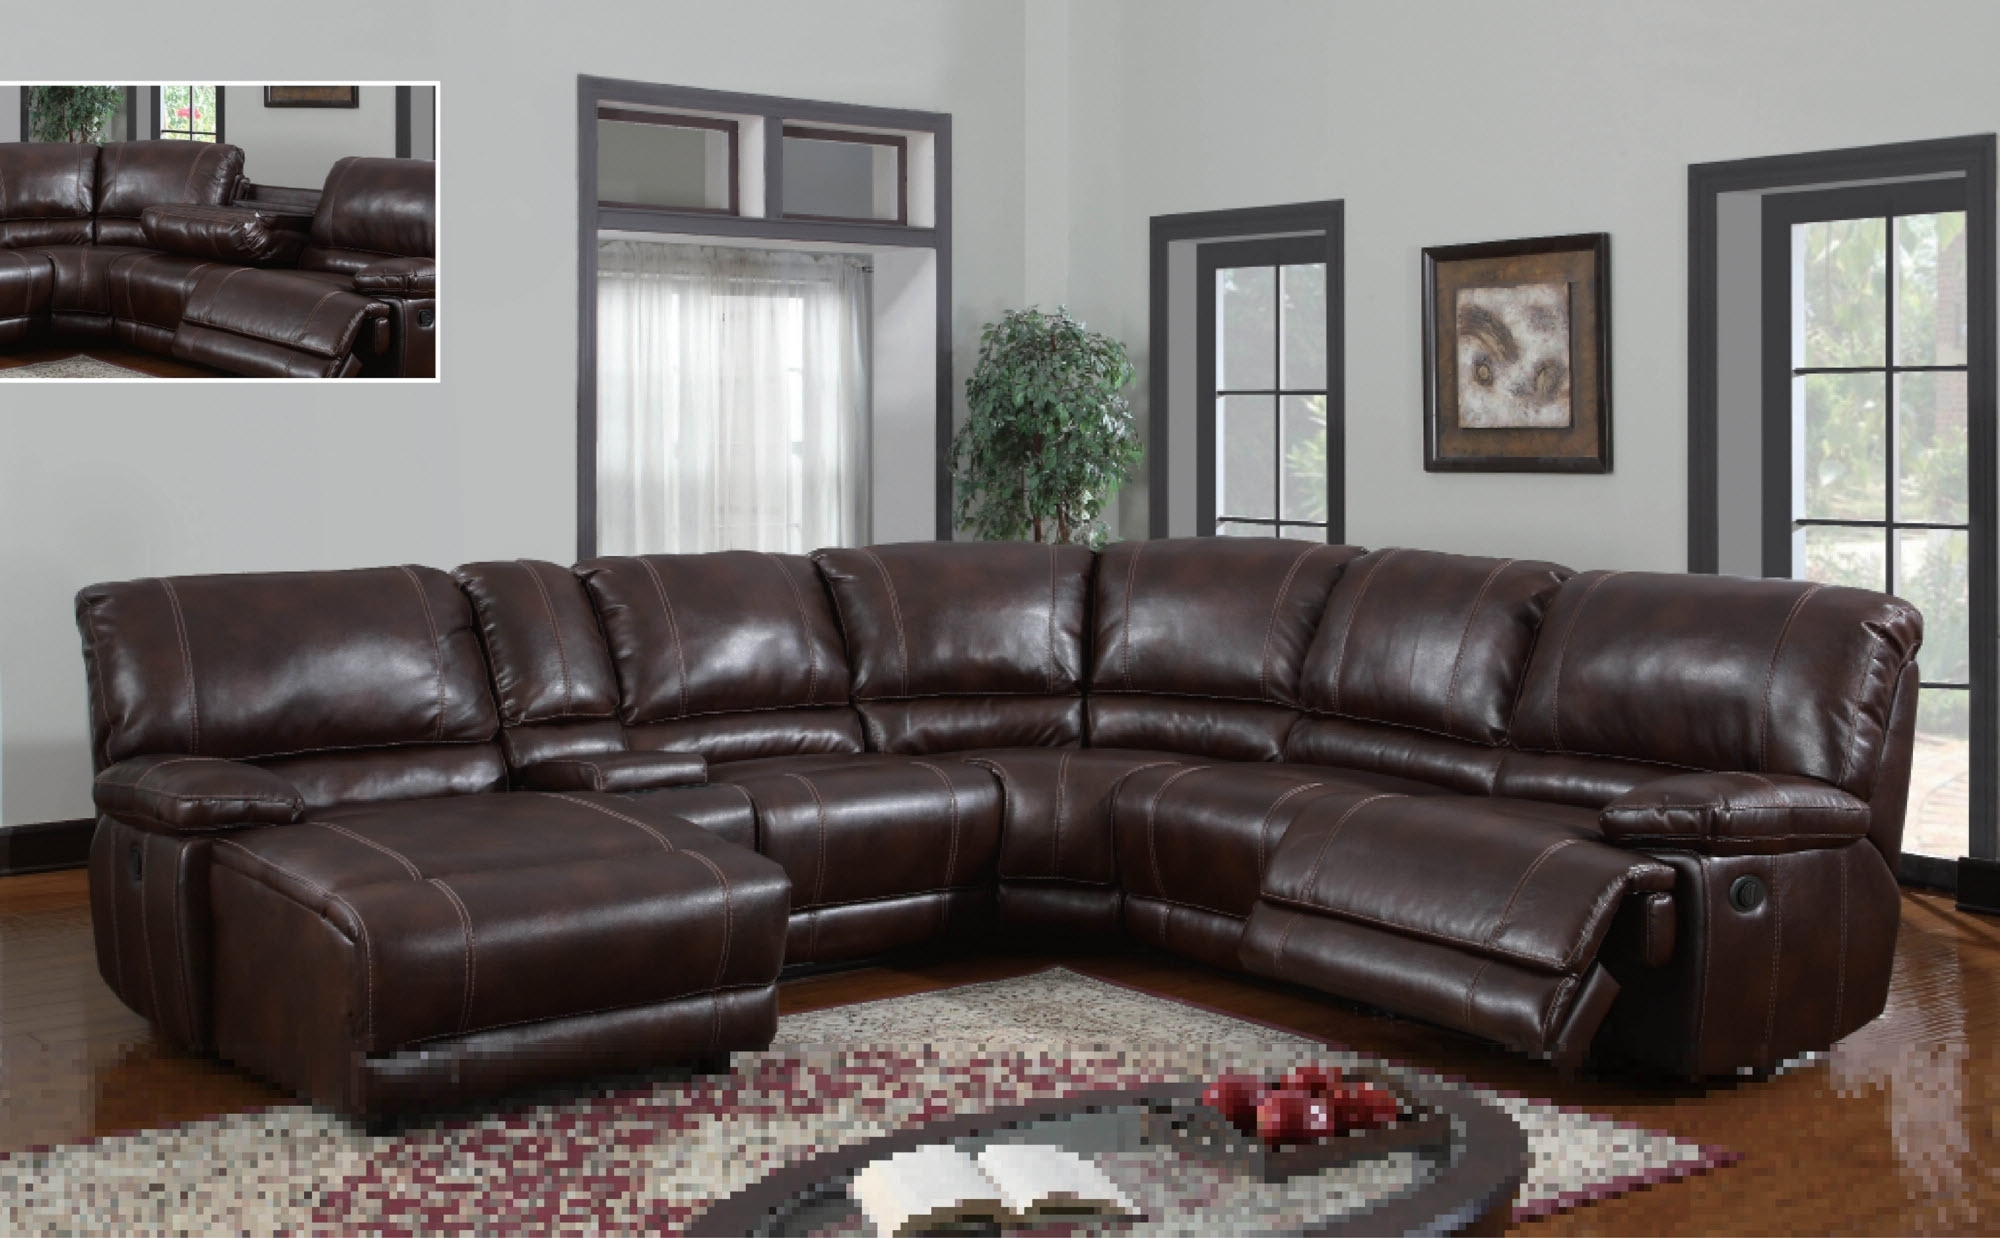 Homesfeed Intended For Most Up To Date Sectionals With Chaise And Recliner (View 5 of 15)